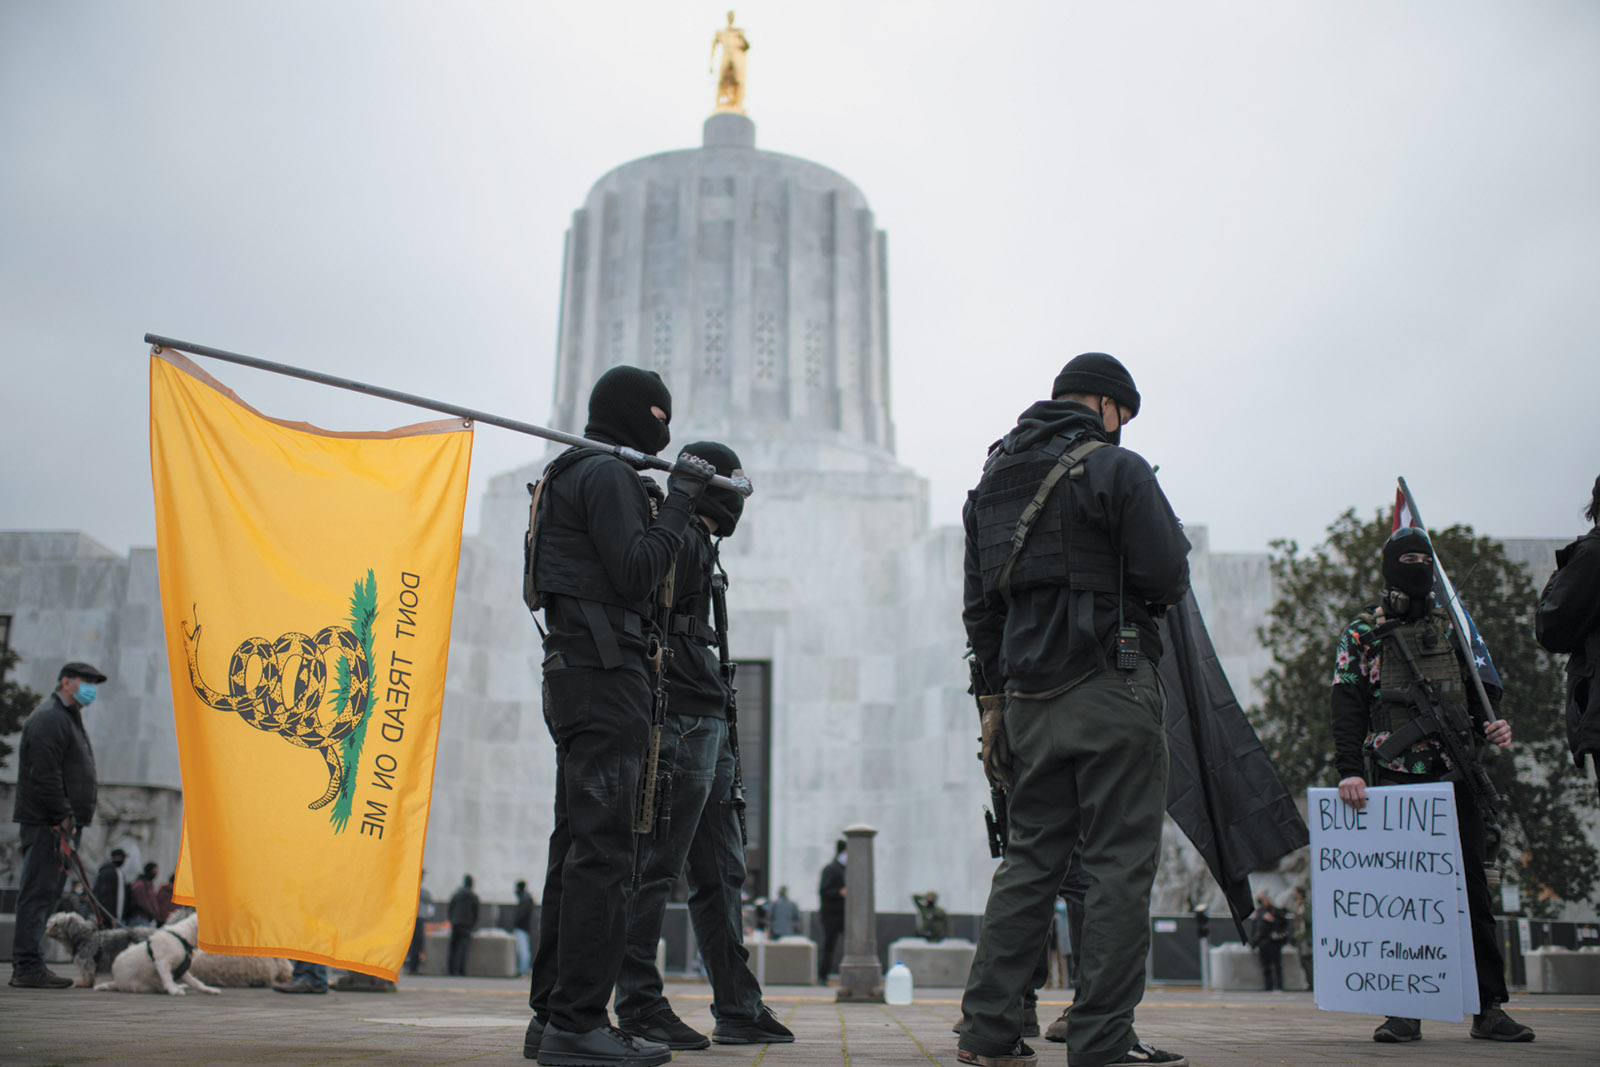 Armed members of the Boogaloo Bois in front of the Oregon State Capitol during a nationwide protest called by far-right groups in support of President Trump and his claim of electoral fraud